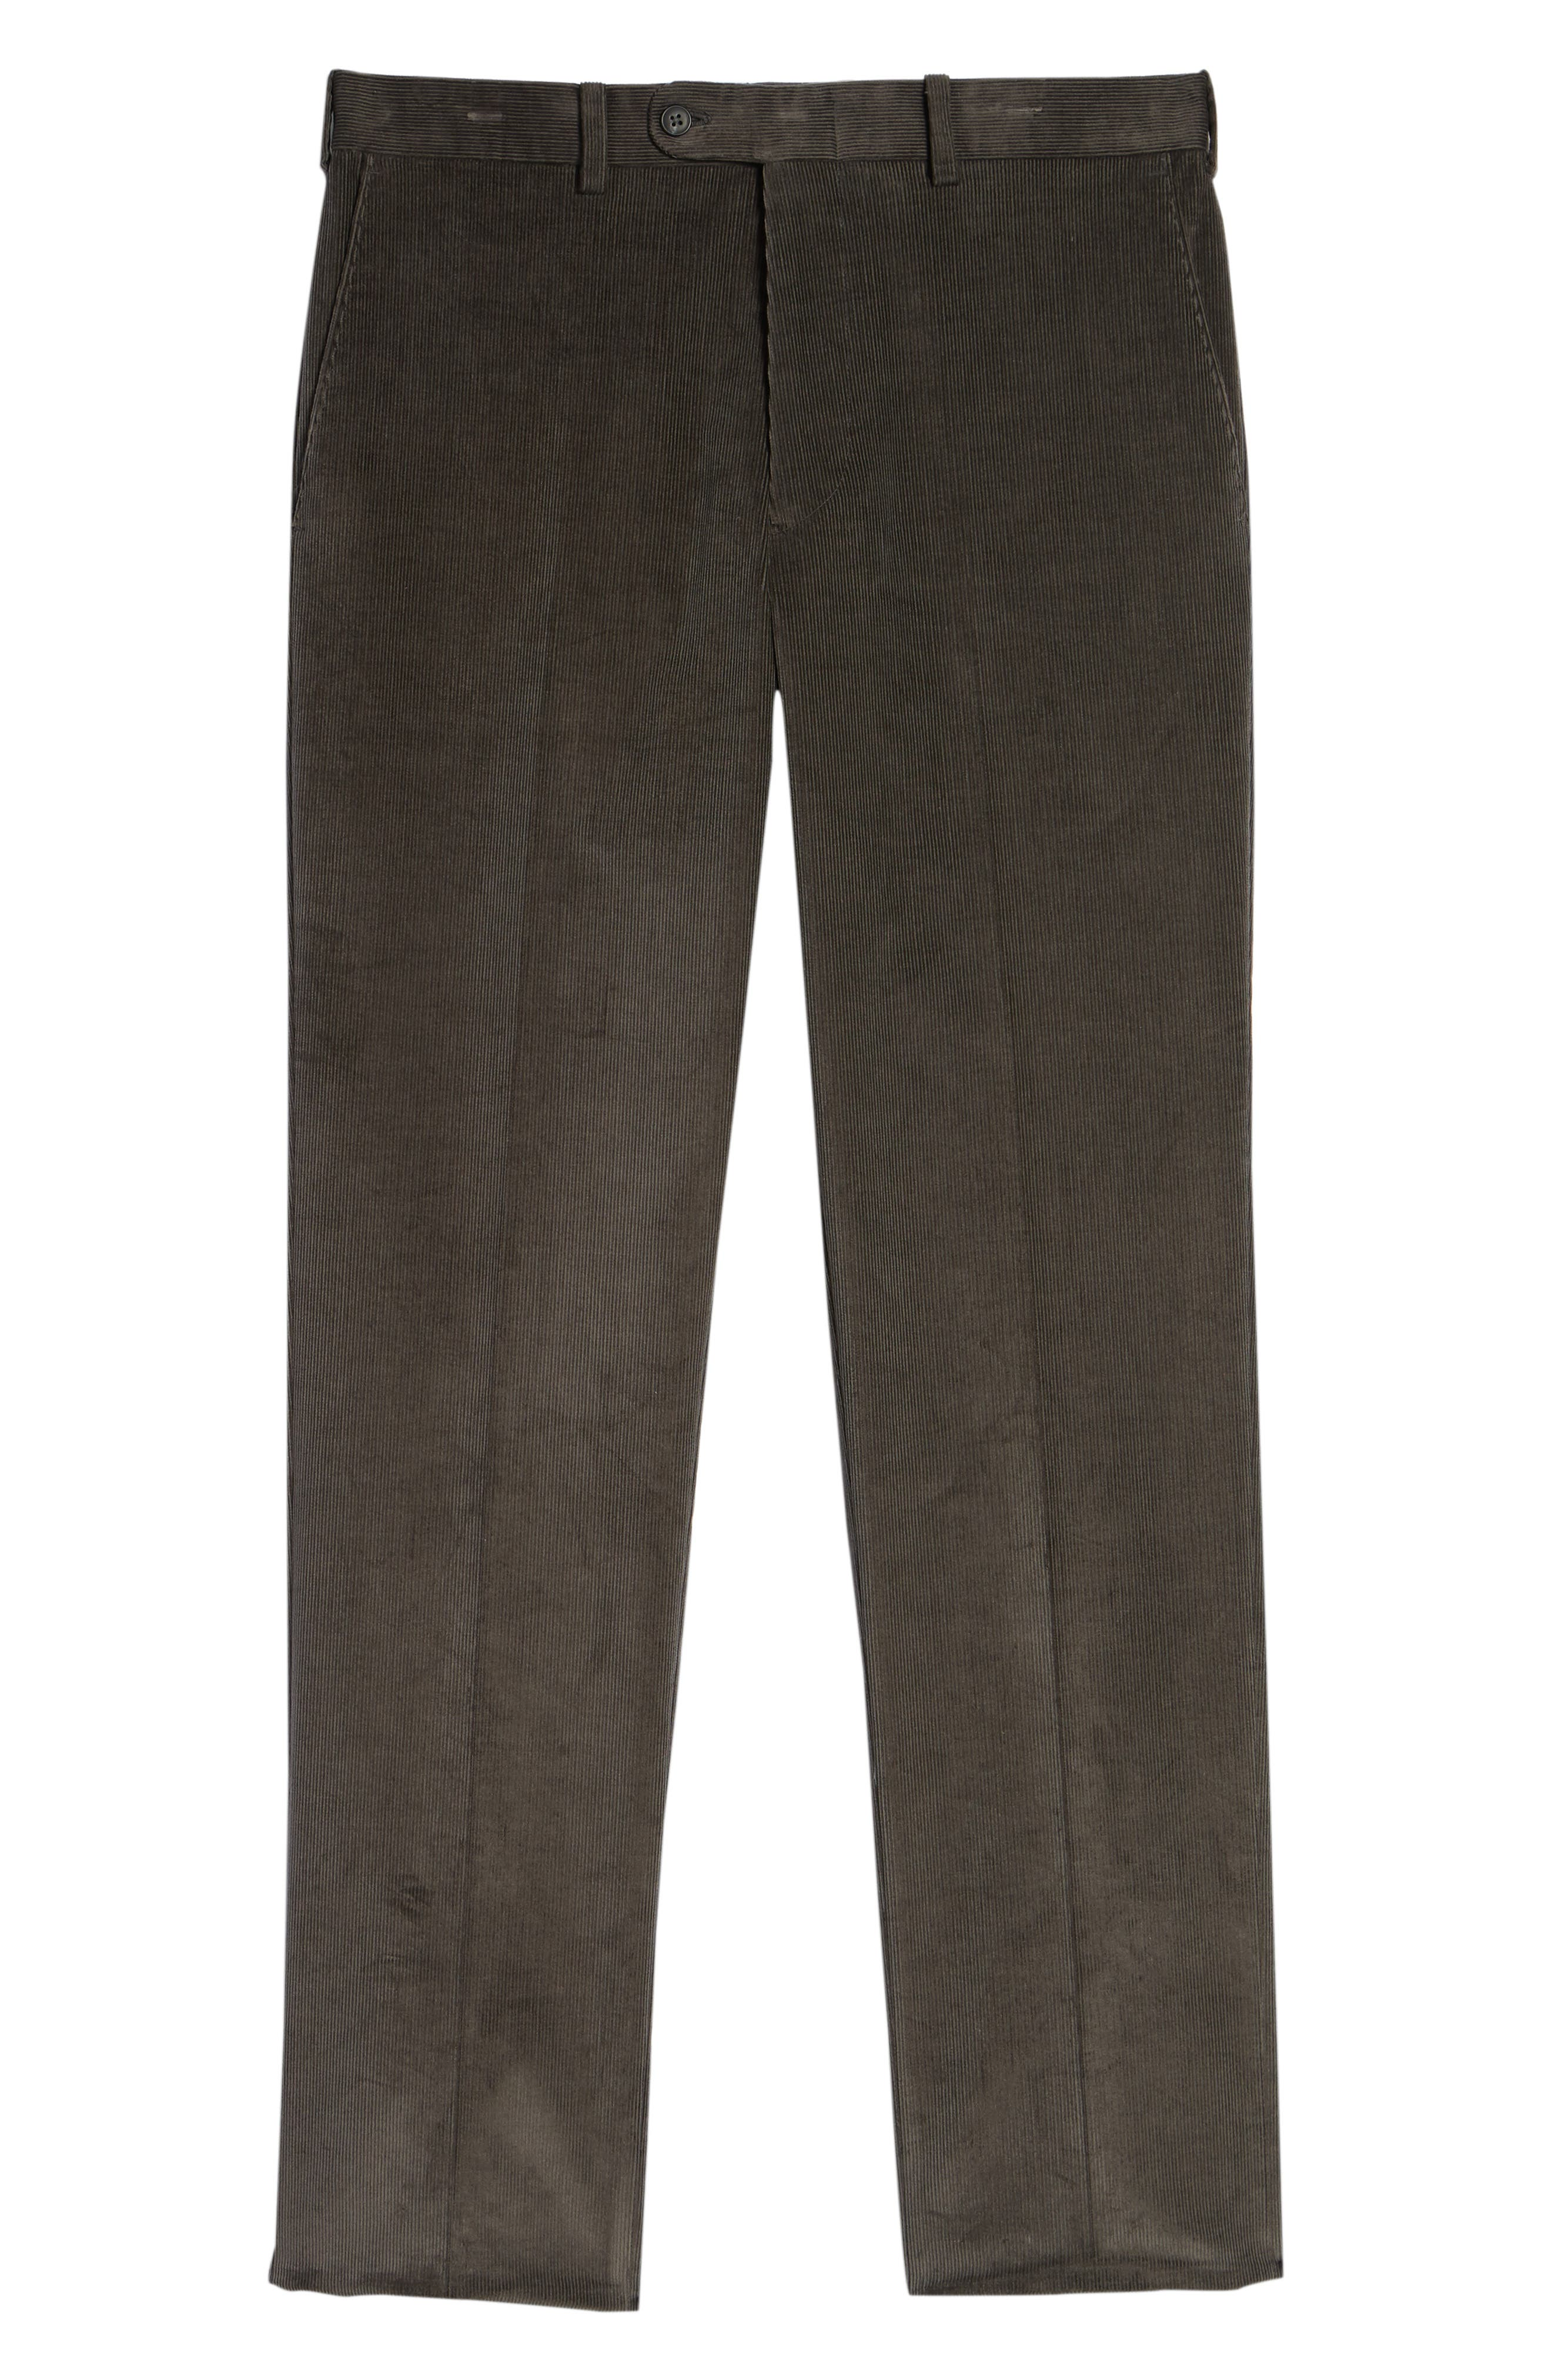 Torino Traditional Fit Flat Front Corduroy Trousers,                             Alternate thumbnail 6, color,                             GREY